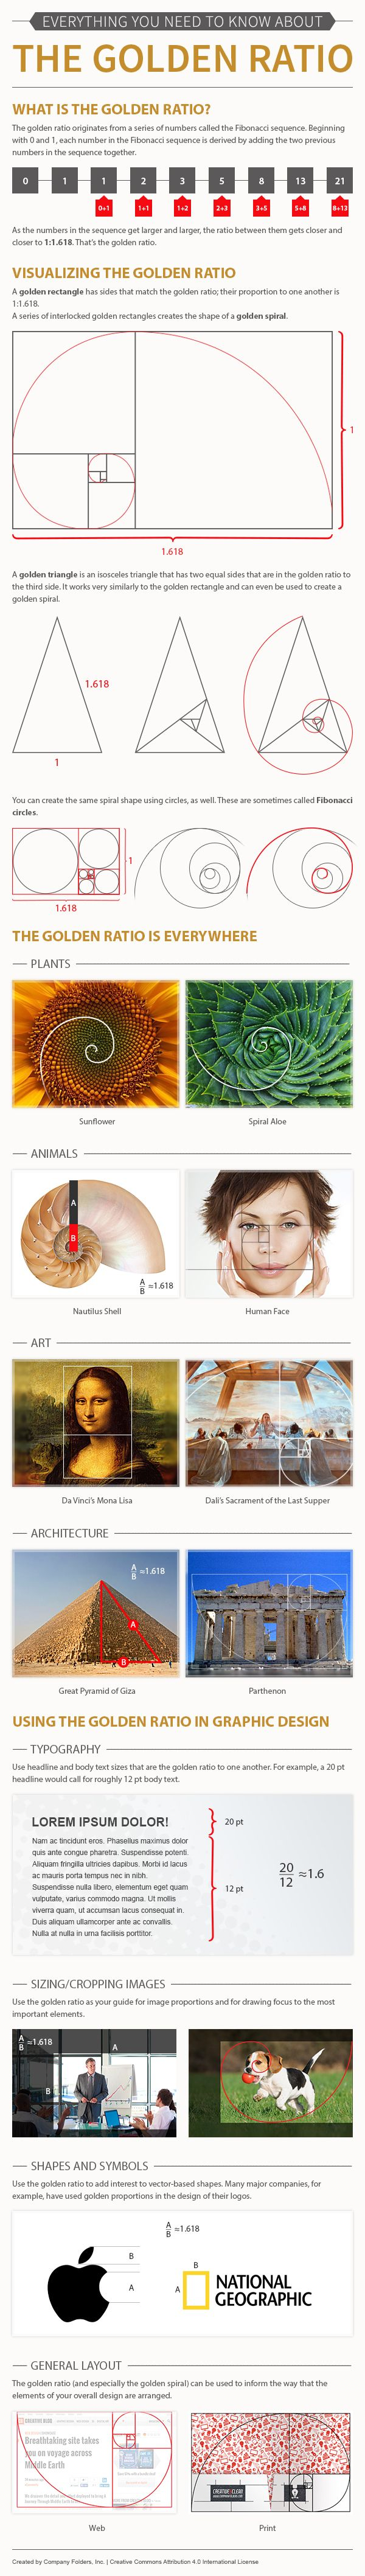 Tips to Apply the Golden Ratio in Photography and Design - Tipsographic